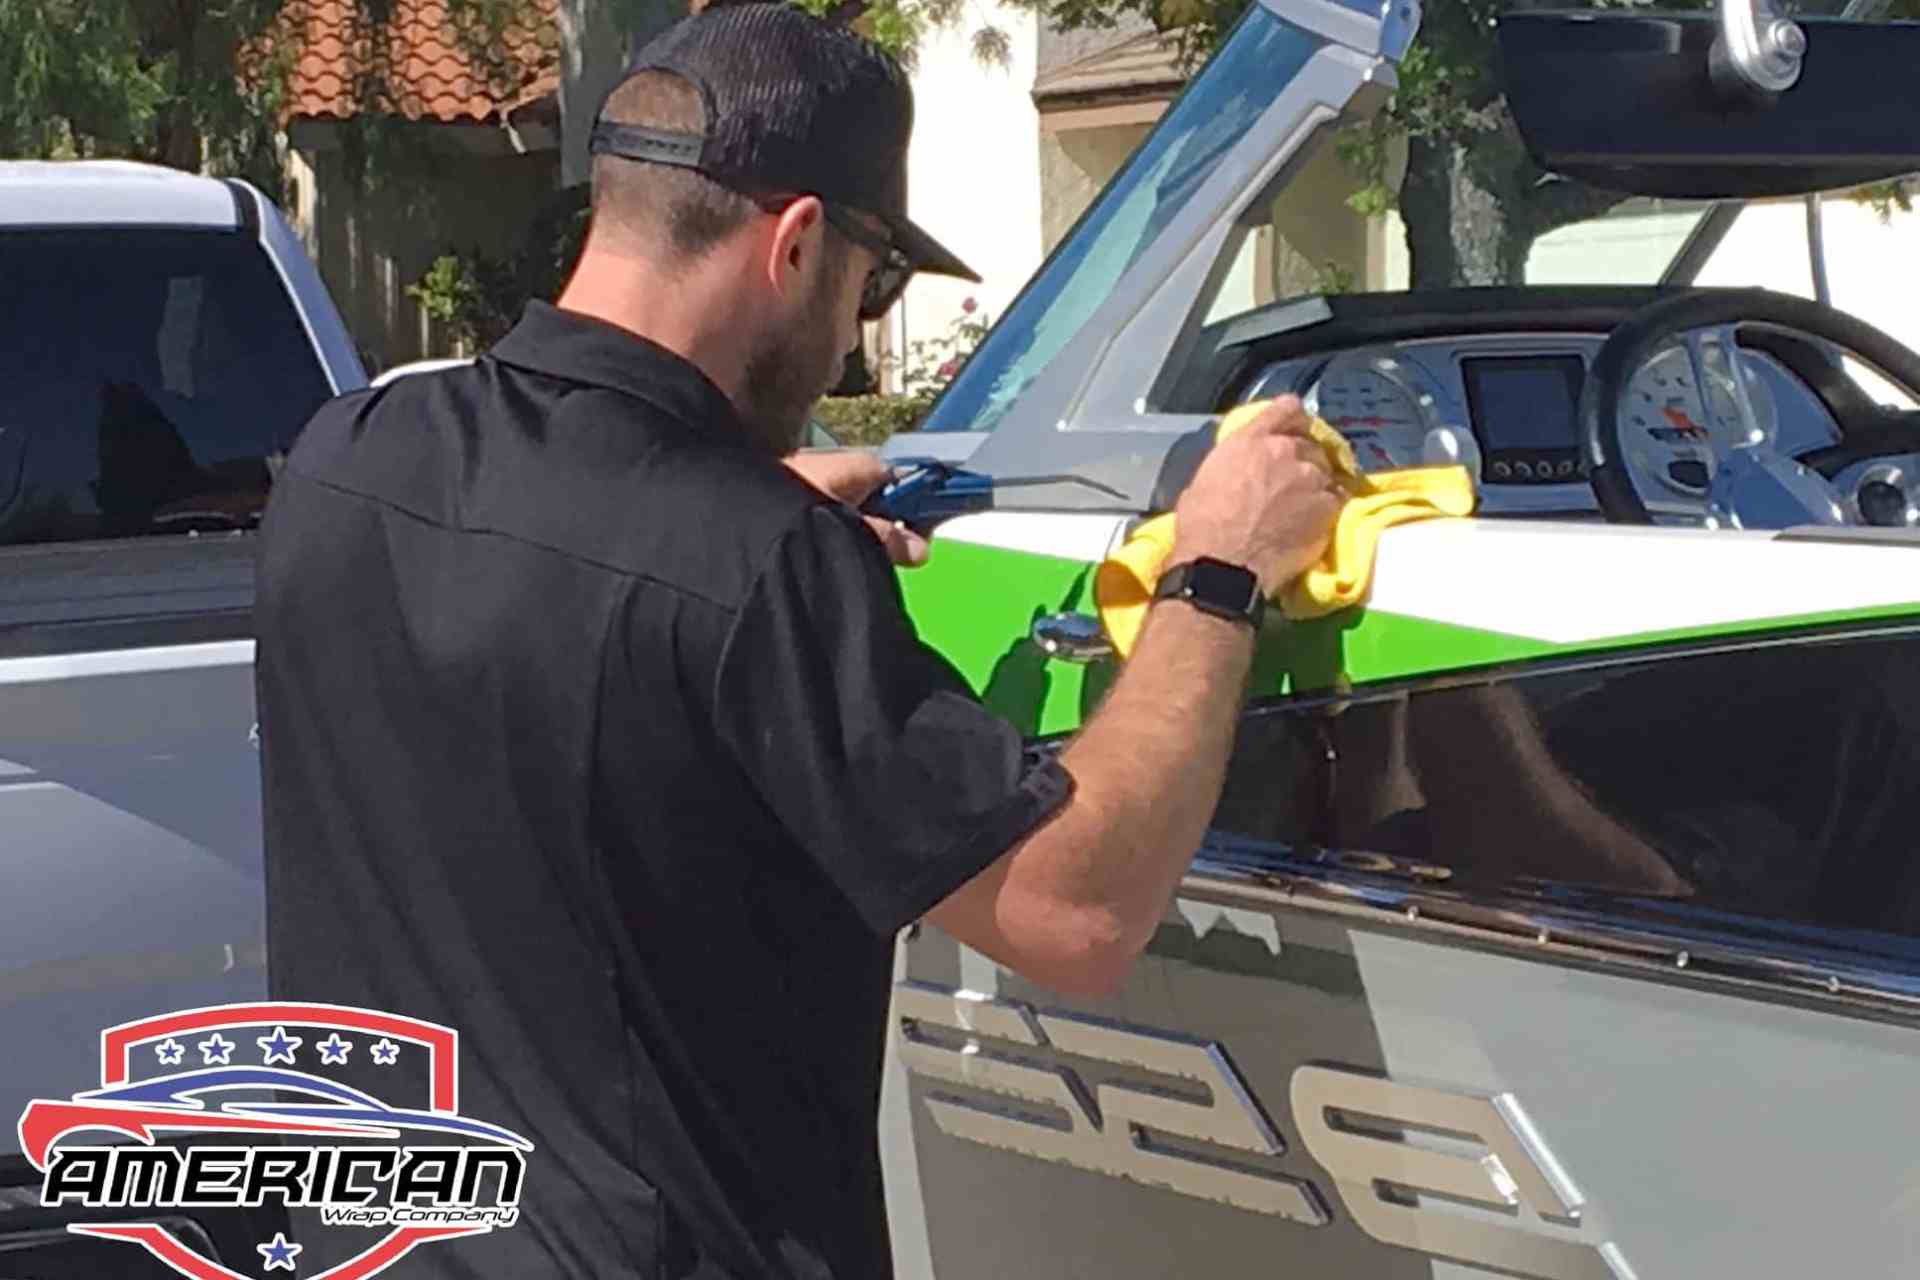 World's Best Paint Protection Installer Tyler O'Hara working on boat